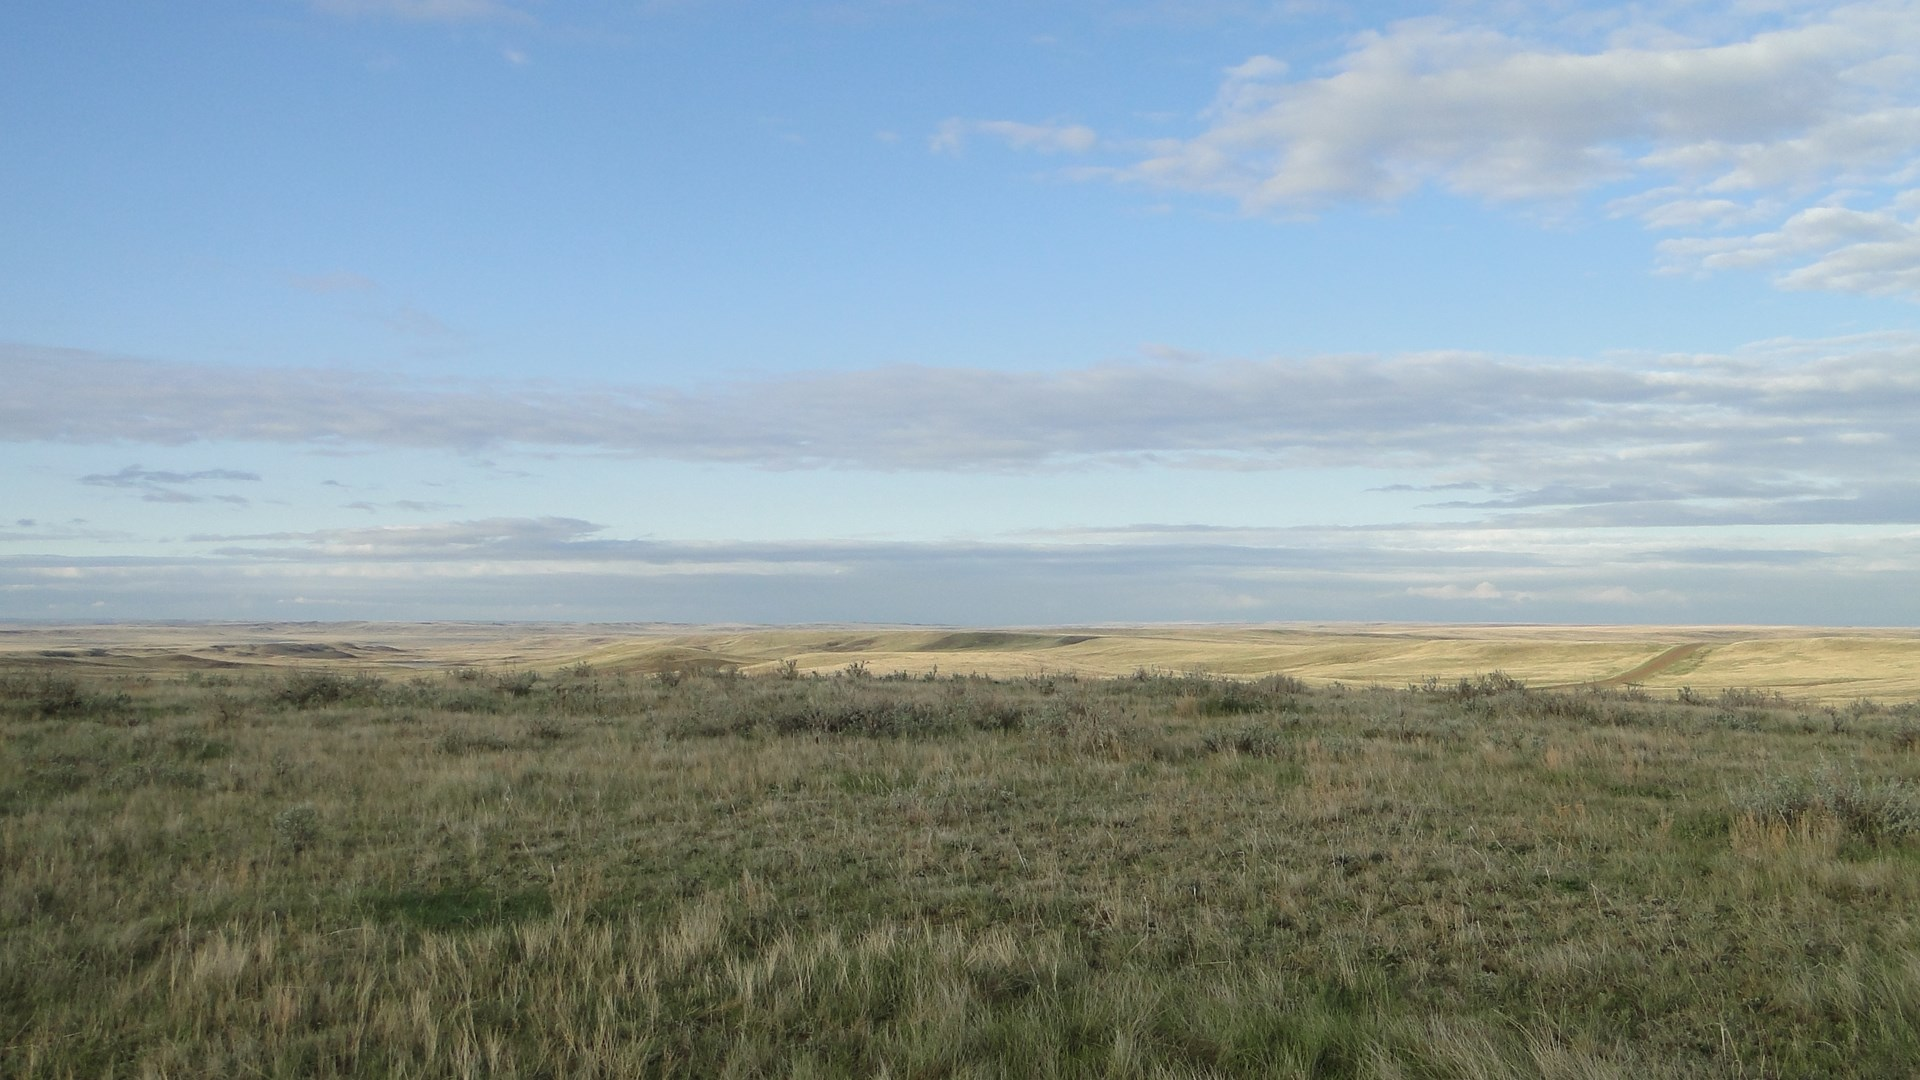 Grazing Land for Sale, 320 Deeded Acres, County Road Access